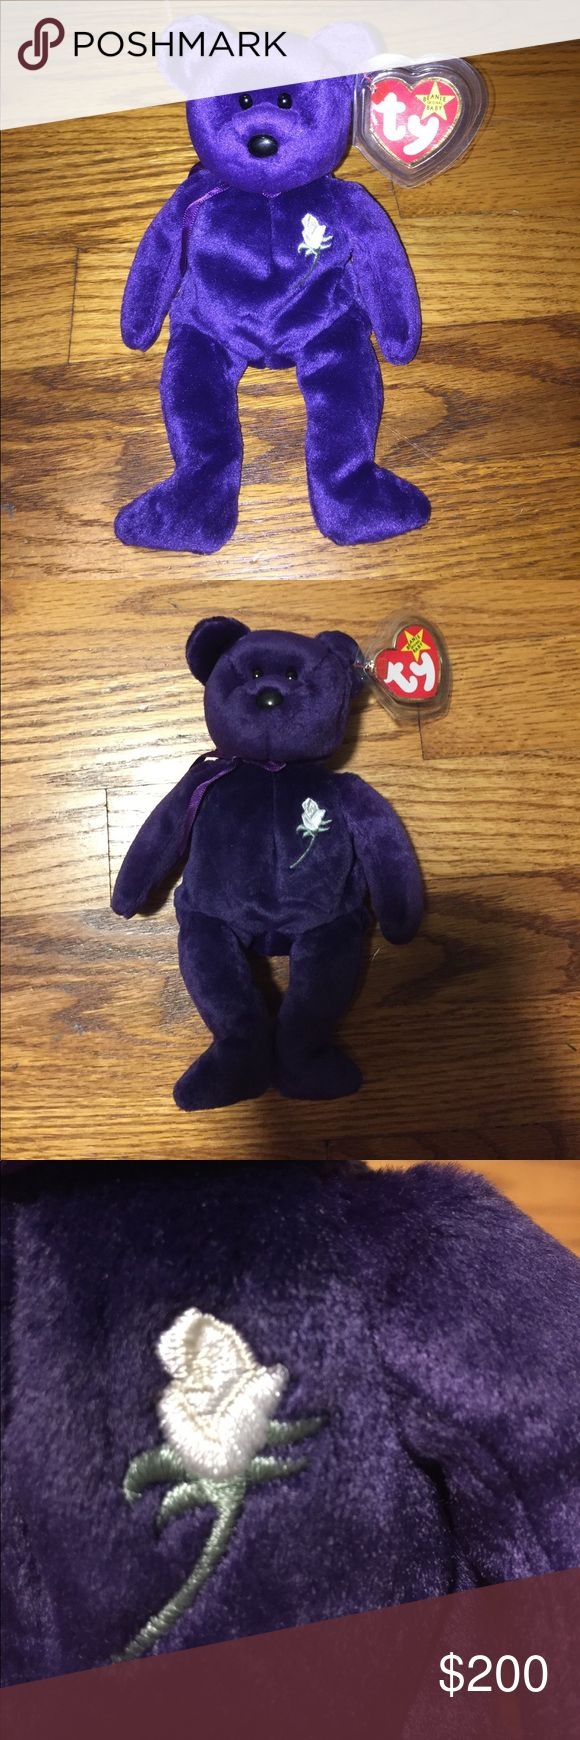 """Princess Diana beanie baby! 1997 original Princess Diana beanie baby. It is unique because """"Gosport"""" is spelled """"Gasport"""" in the swing tag. The swing tag is a little ripped in the corner, otherwise the baby is in MINT condition. I'm willing to offer I just want to get rid of it for a reasonable price. And I have tons more original and unique beanie babies if interested. Other"""